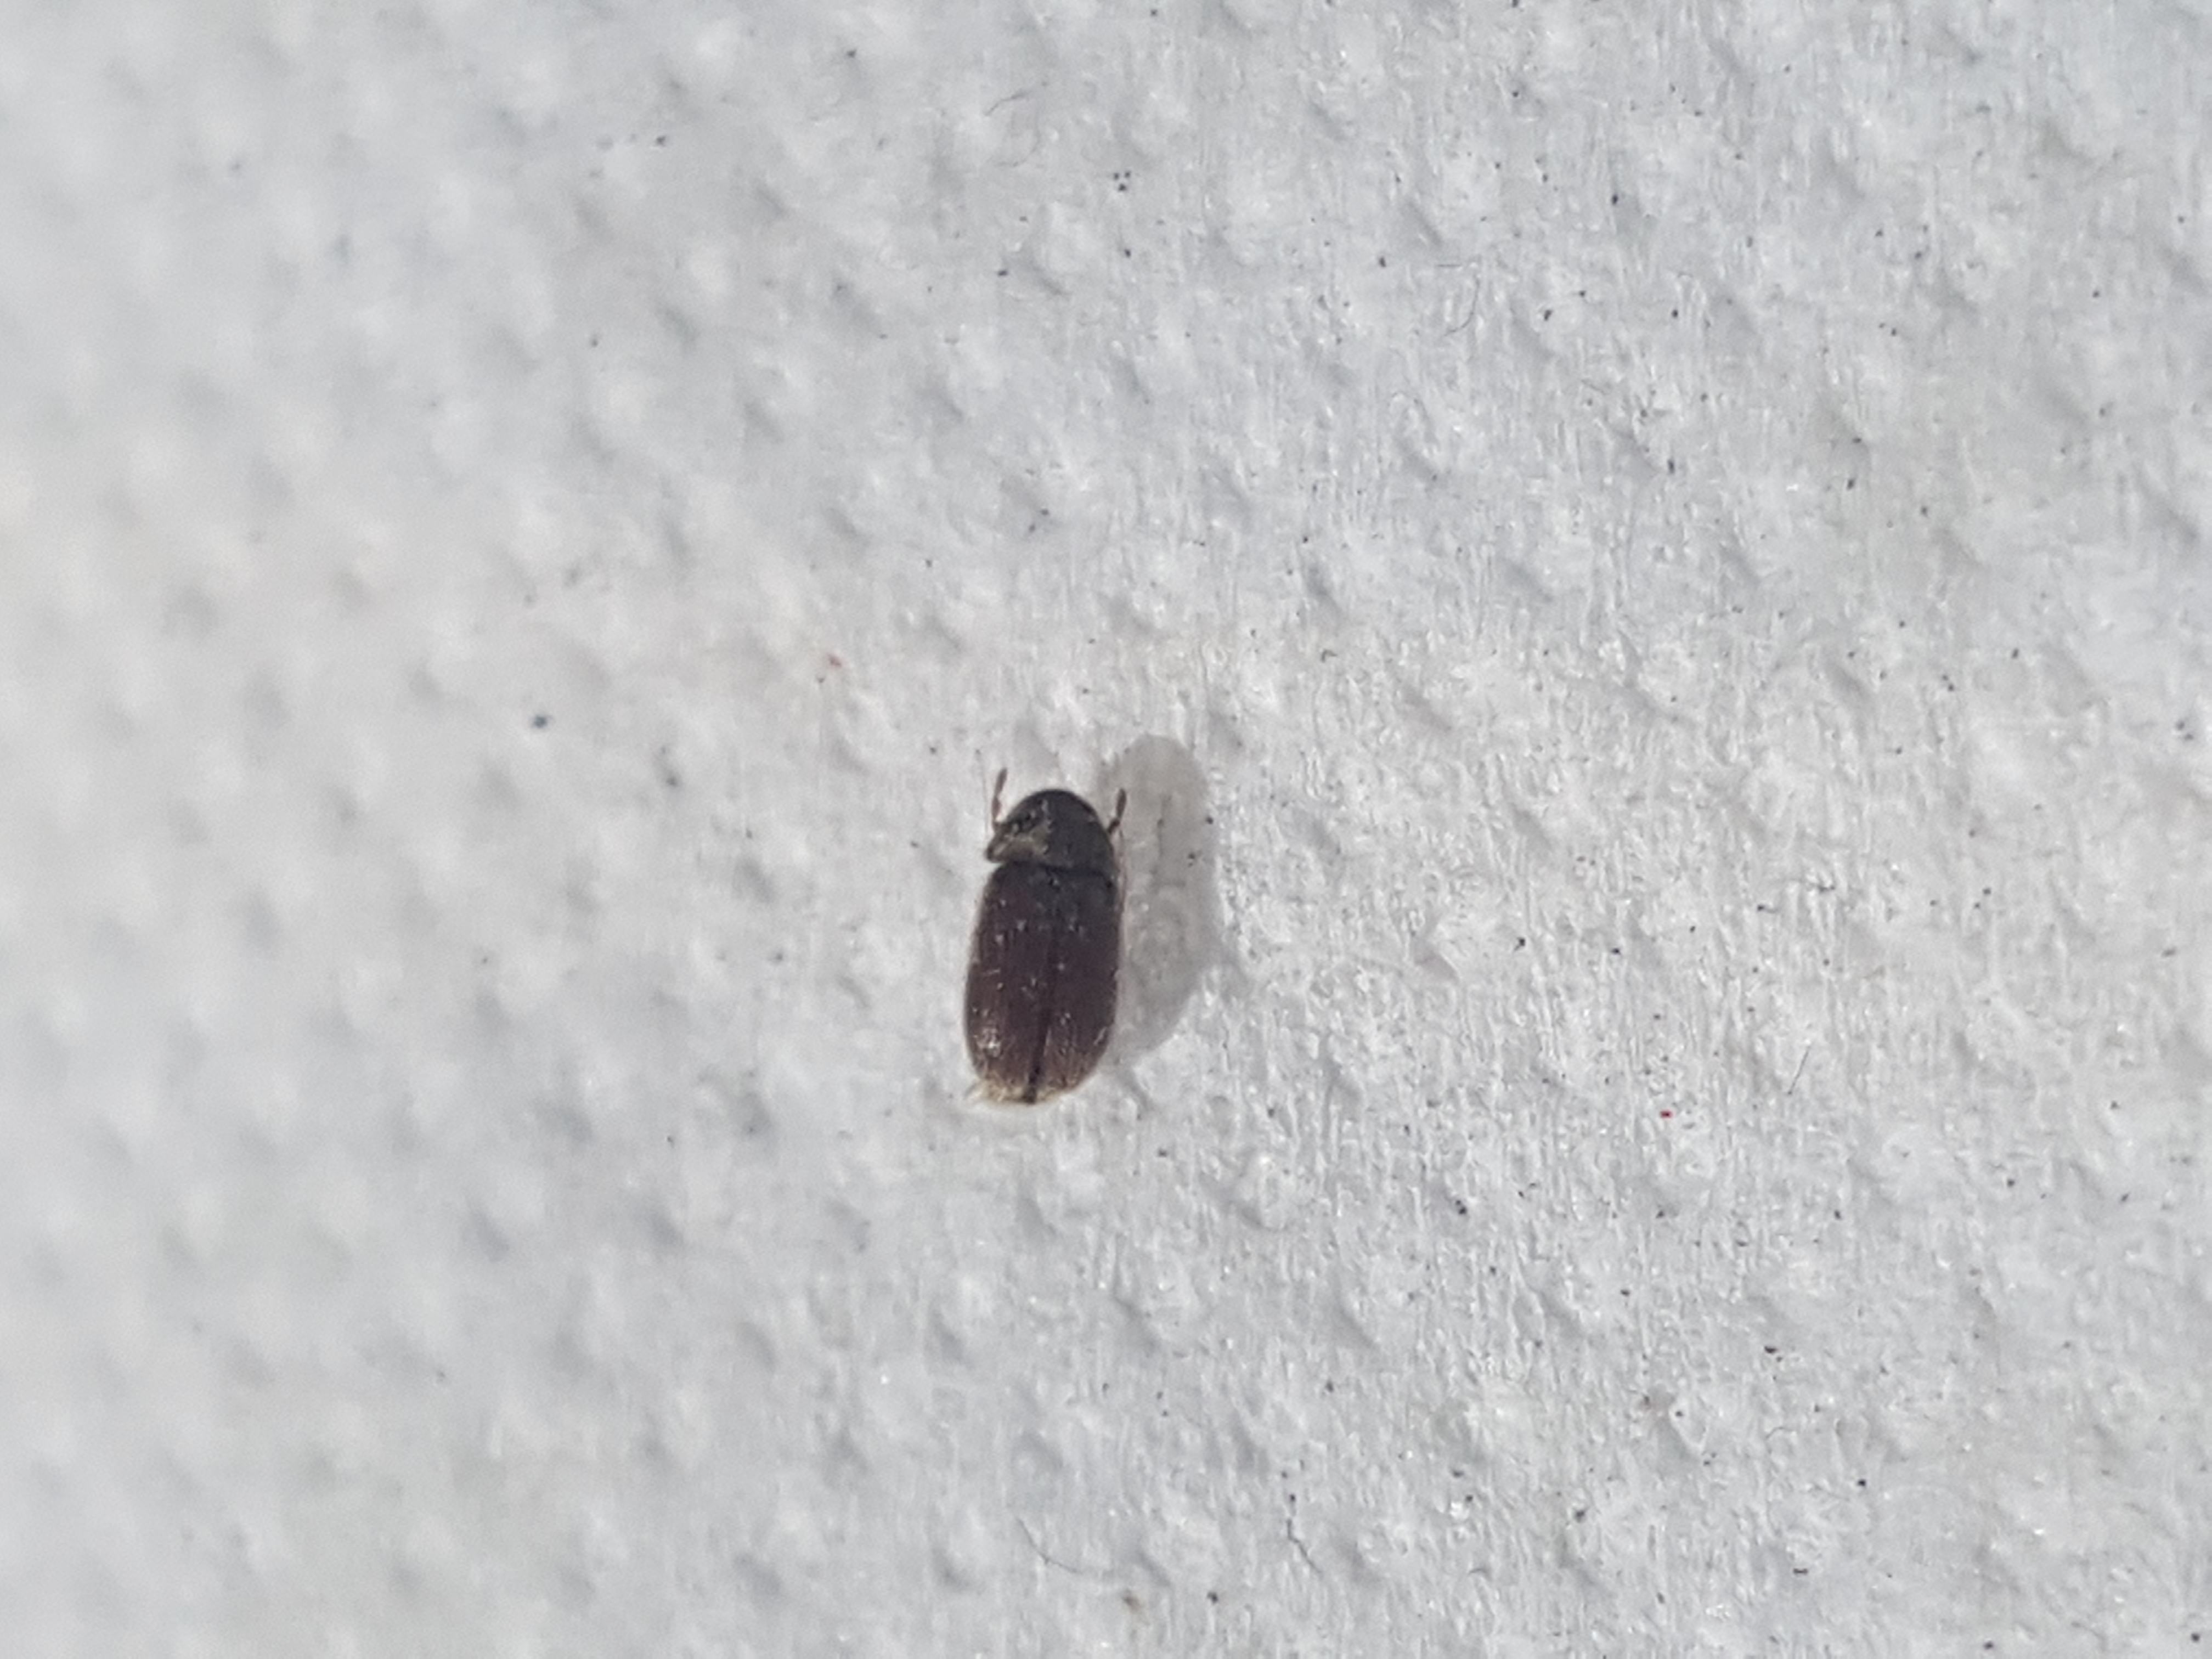 Natureplus Please Help Id These Small Black Flying Bugs